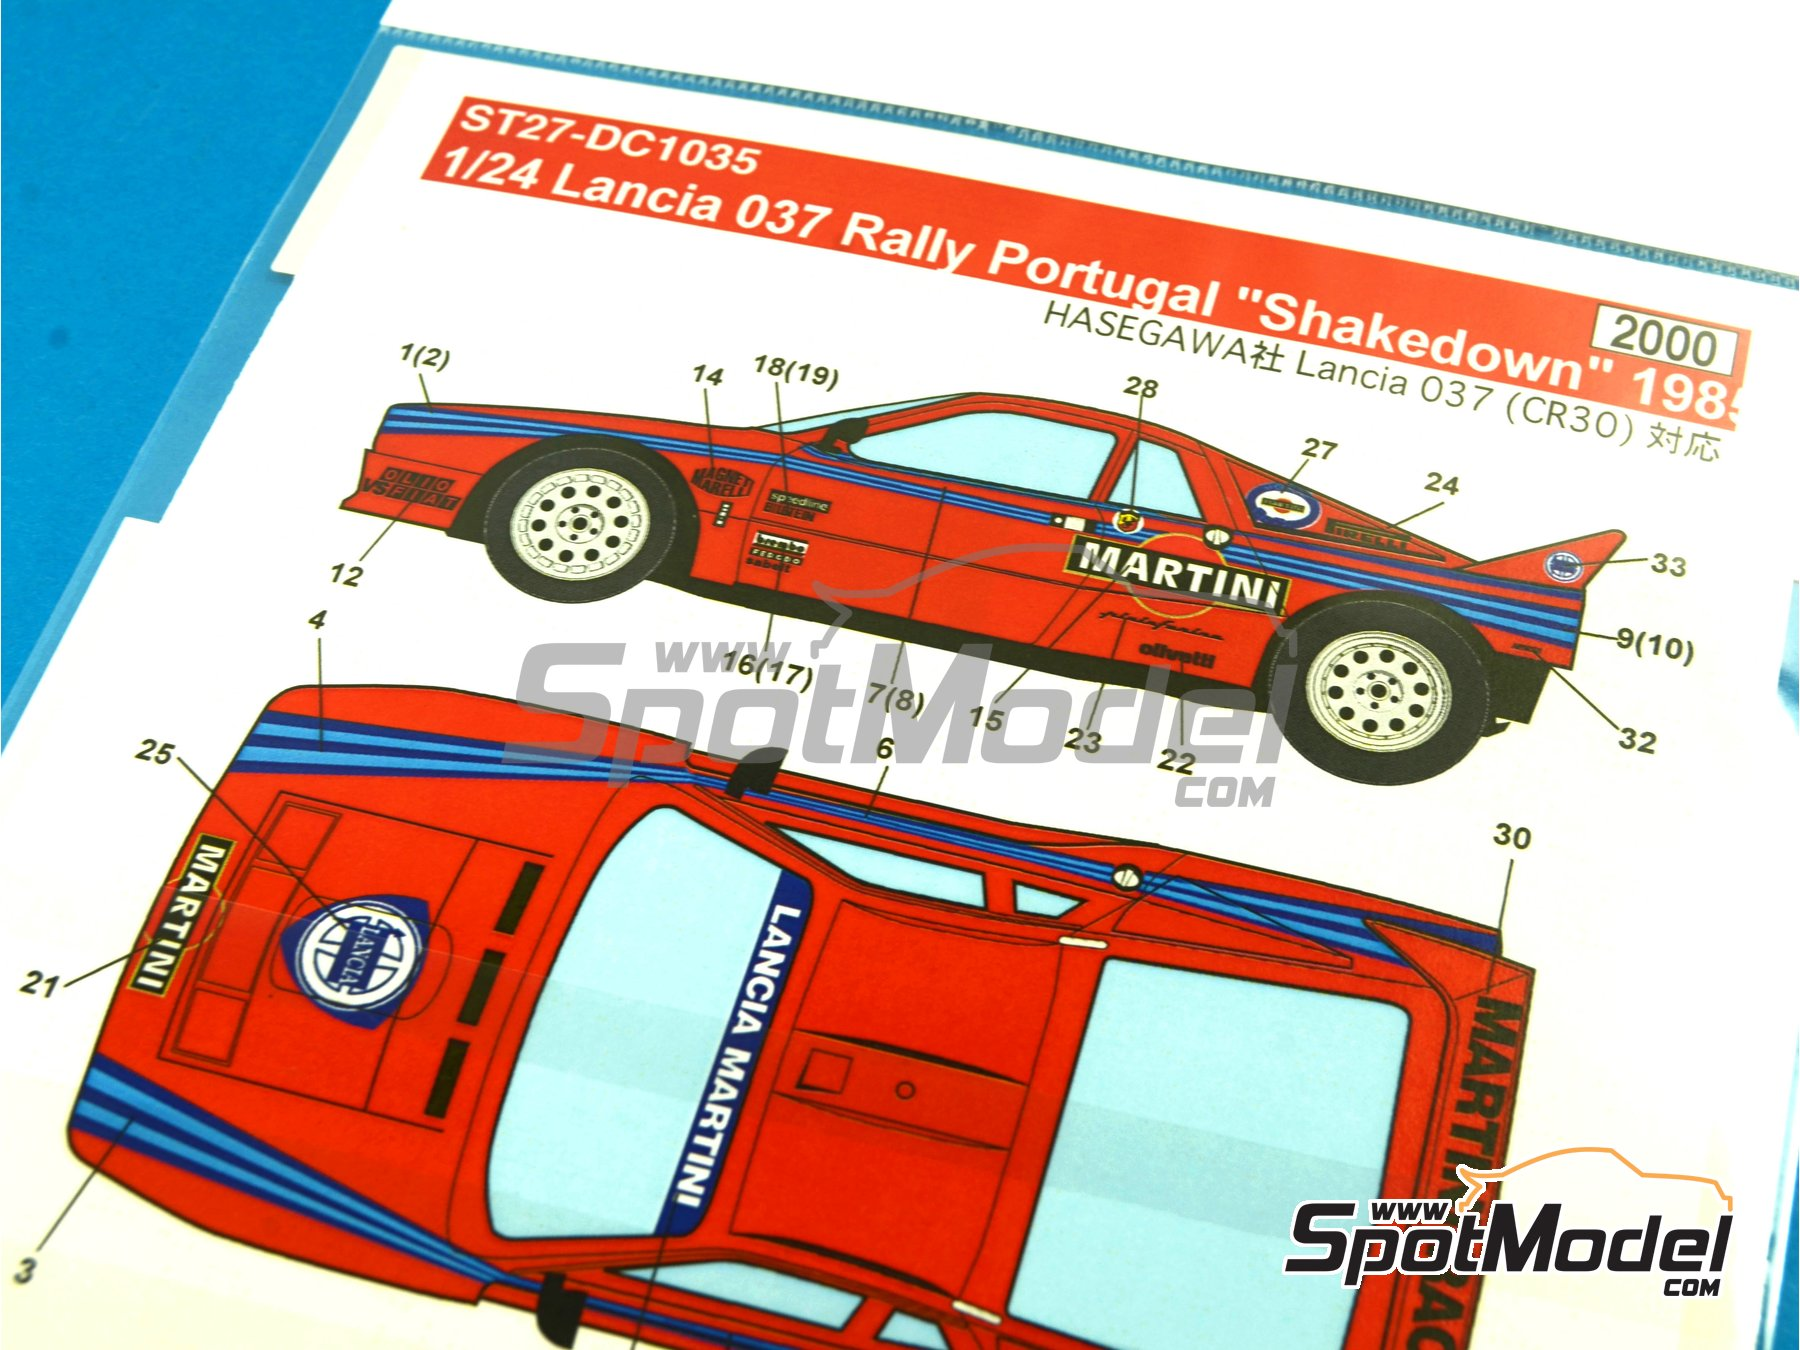 Image 5: Lancia 037 Rally Martini - Shakedown - Pirelli Testing - Portugal Rally 1985 | Marking / livery in 1/24 scale manufactured by Studio27 (ref. ST27-DC1035)